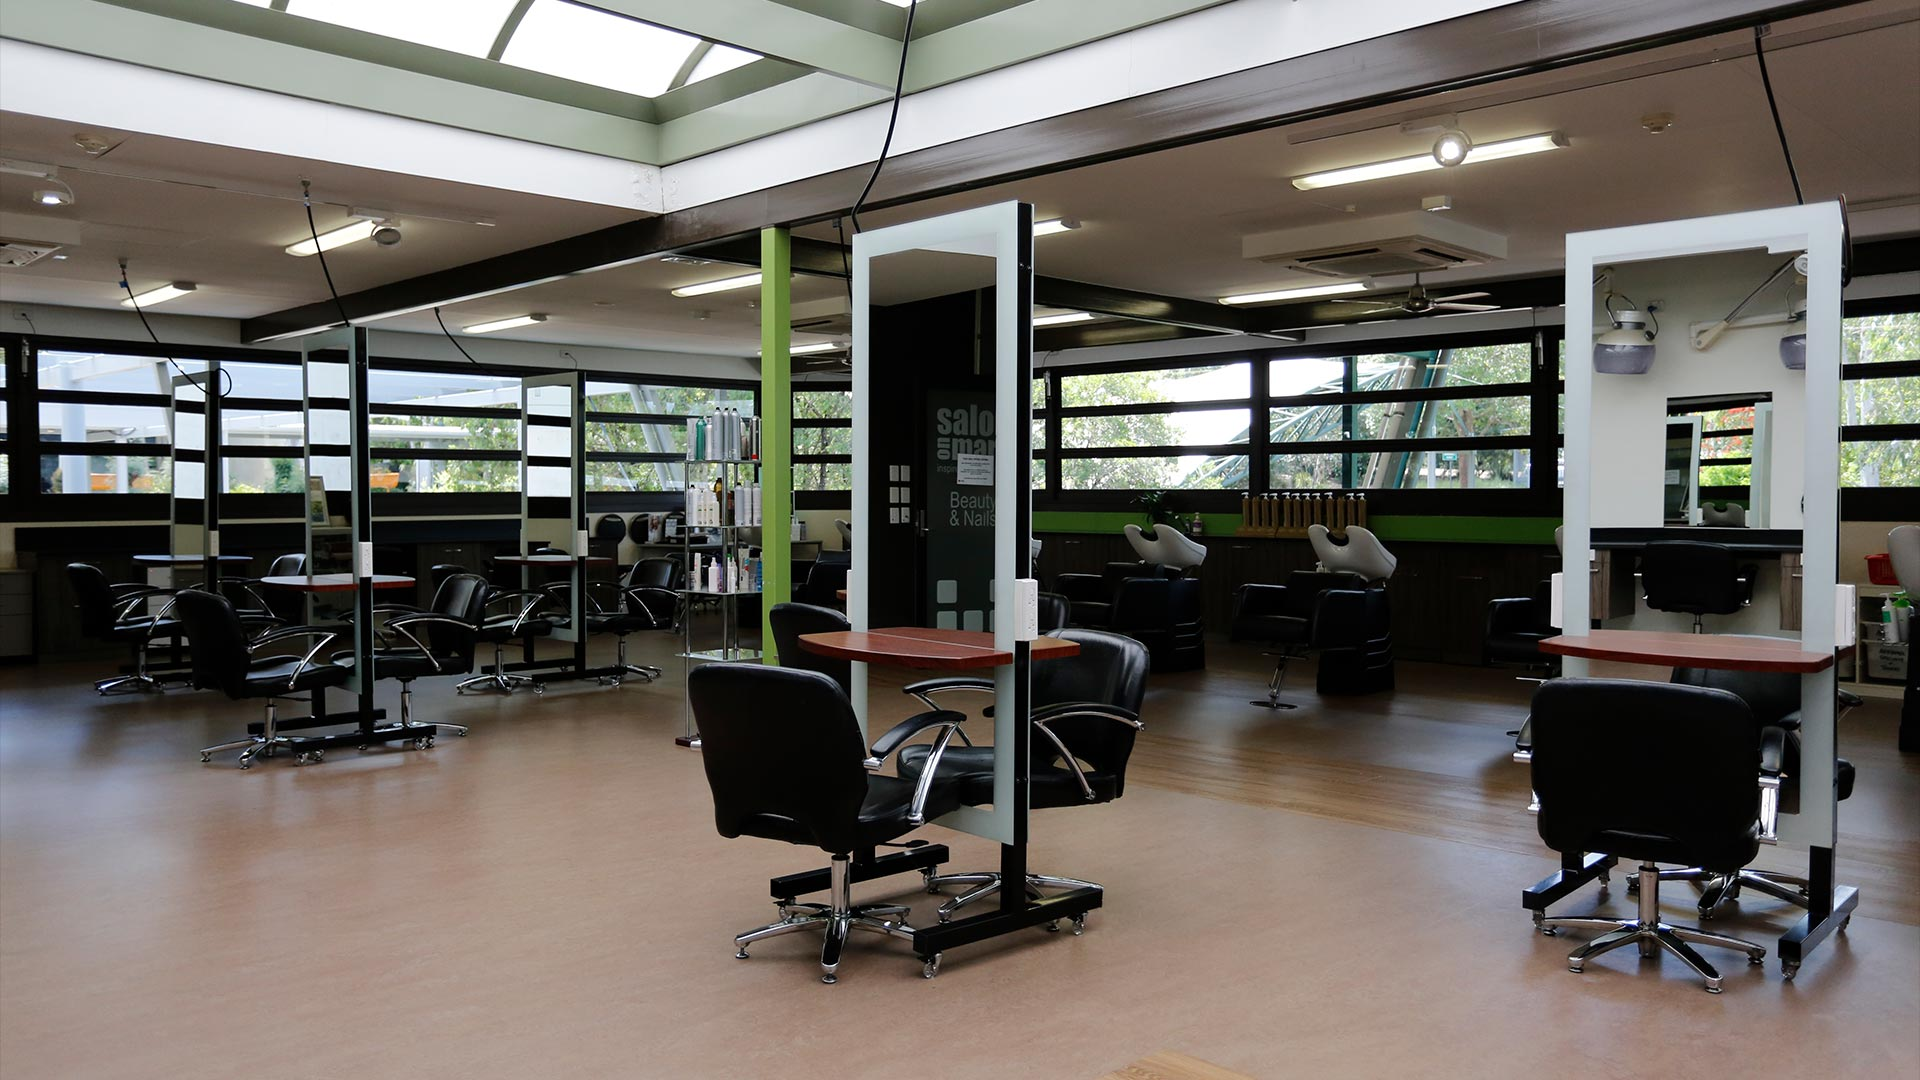 ipswich-facilities-beauty-and-hairdressing-hairdressing-salons-01.jpg